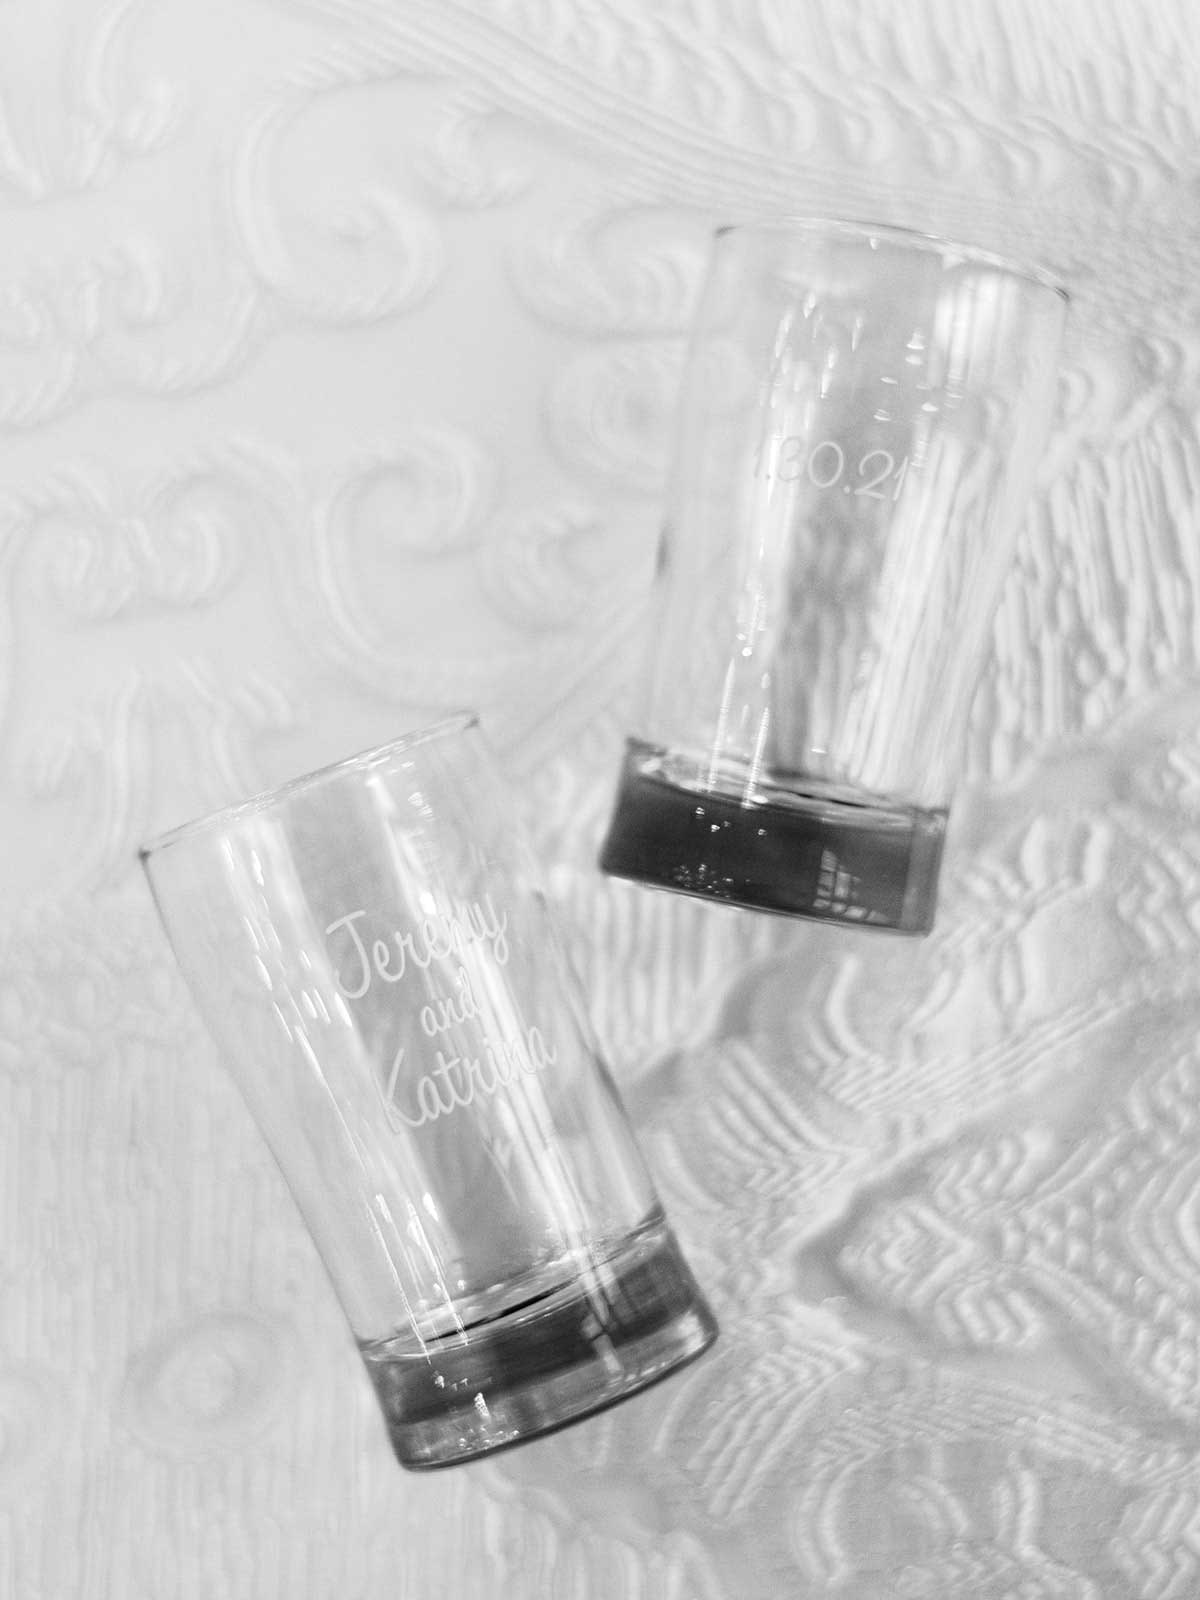 personalized cups with couple's name and wedding date.